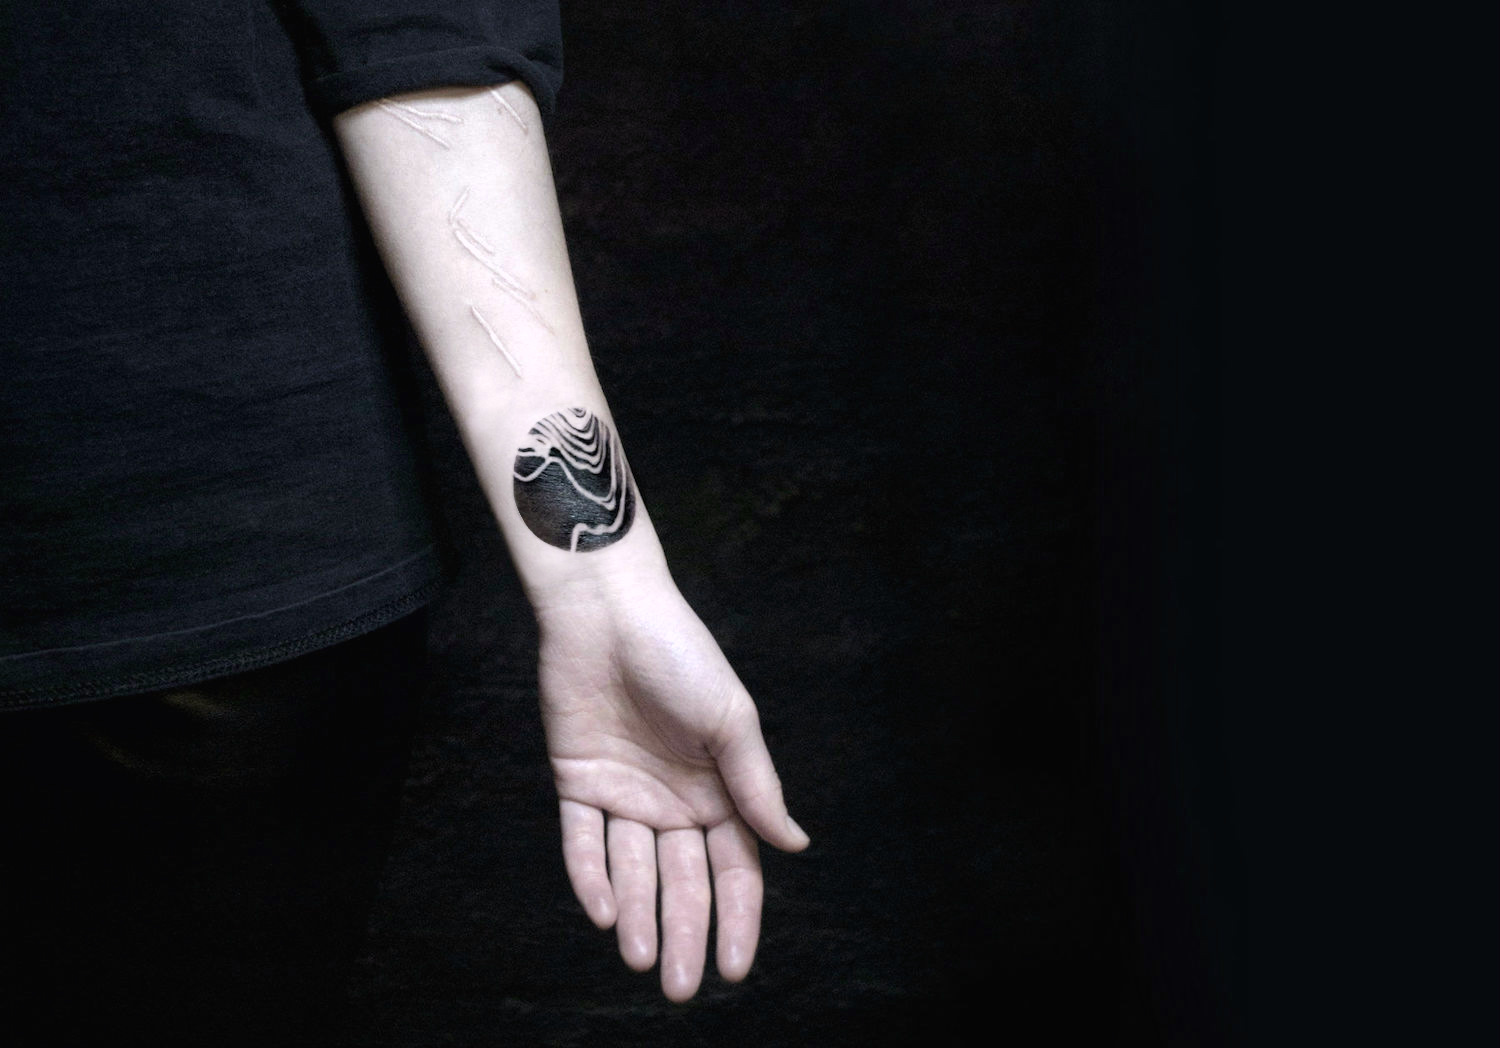 Dramatic Yet Minimal Tattoo Designs